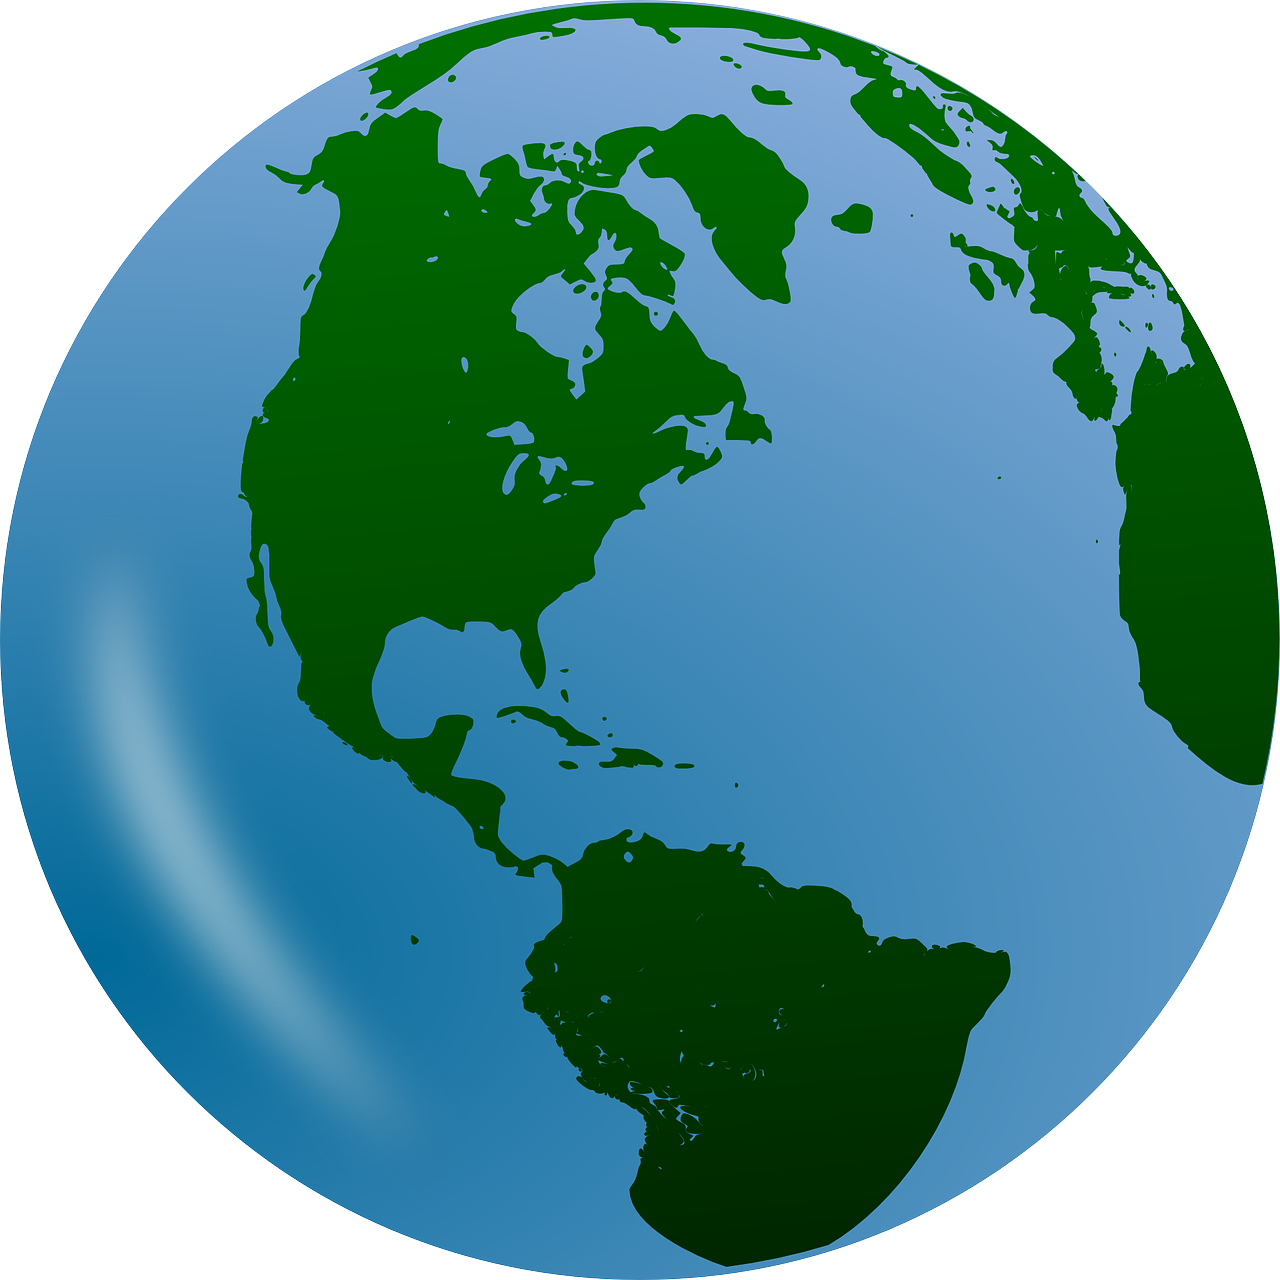 earth-147591-1280.png